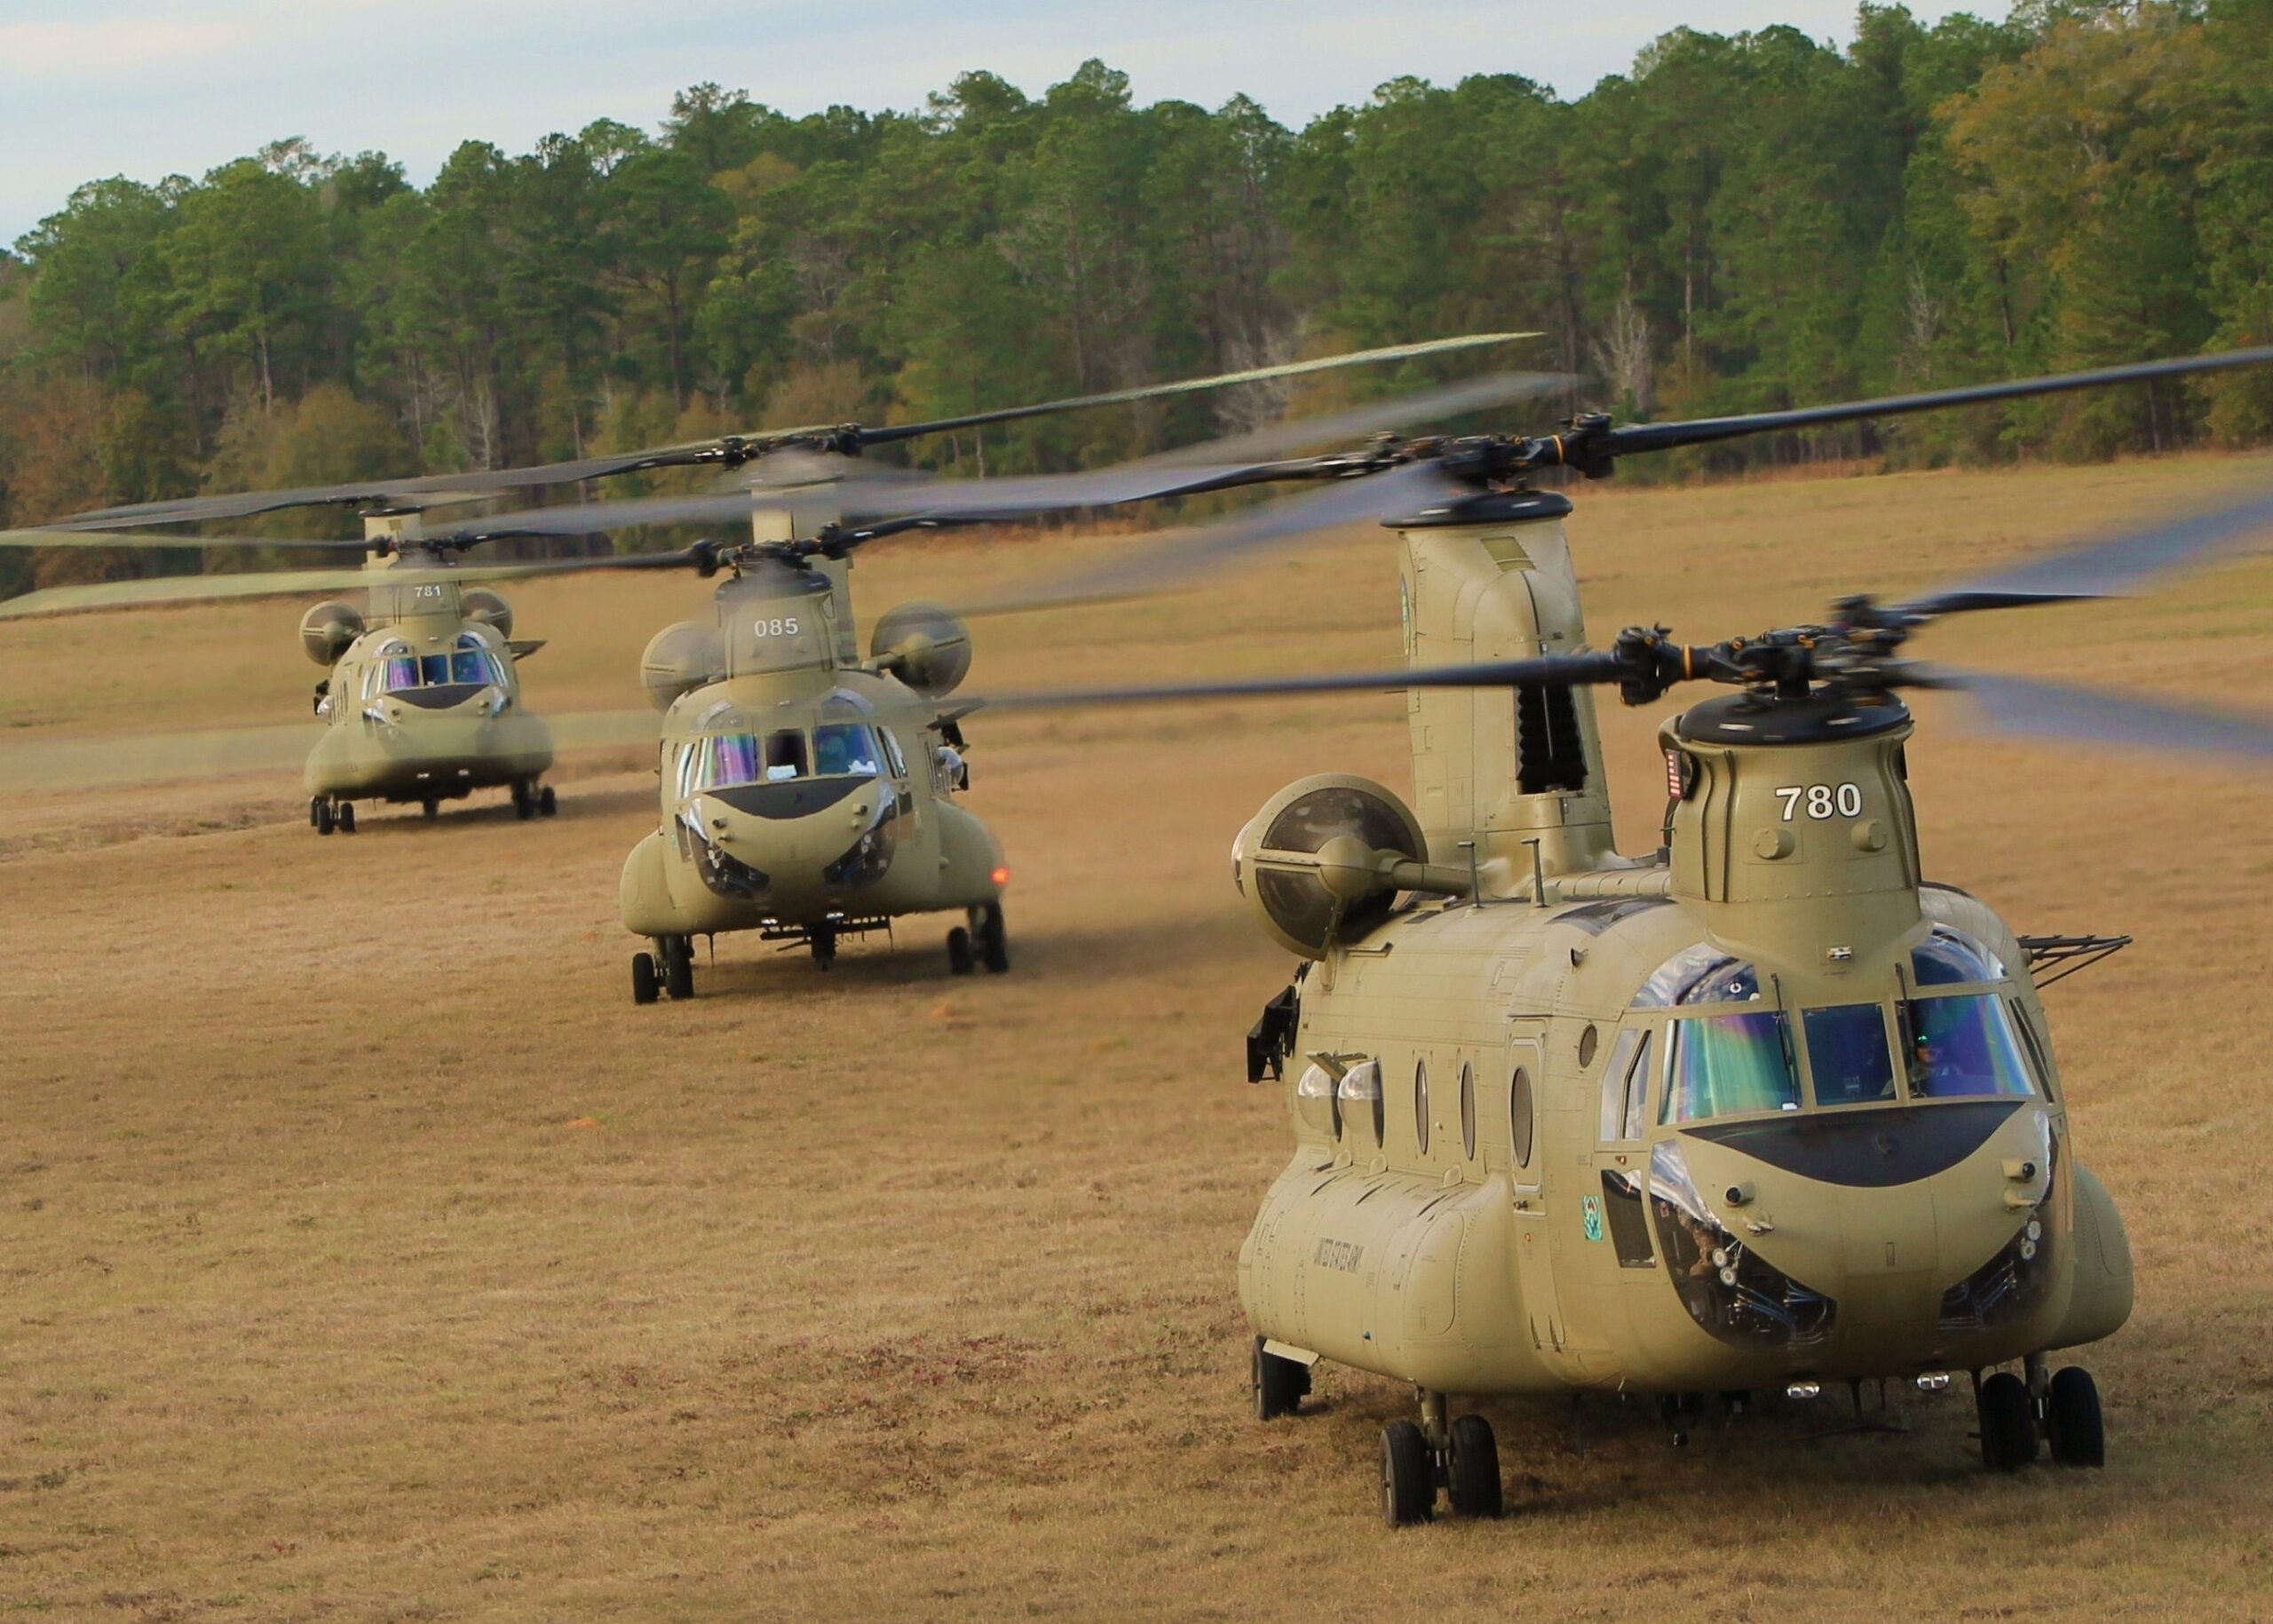 U.S. tells Congress of plans to sell CH-47F Chinook helicopters to Australia